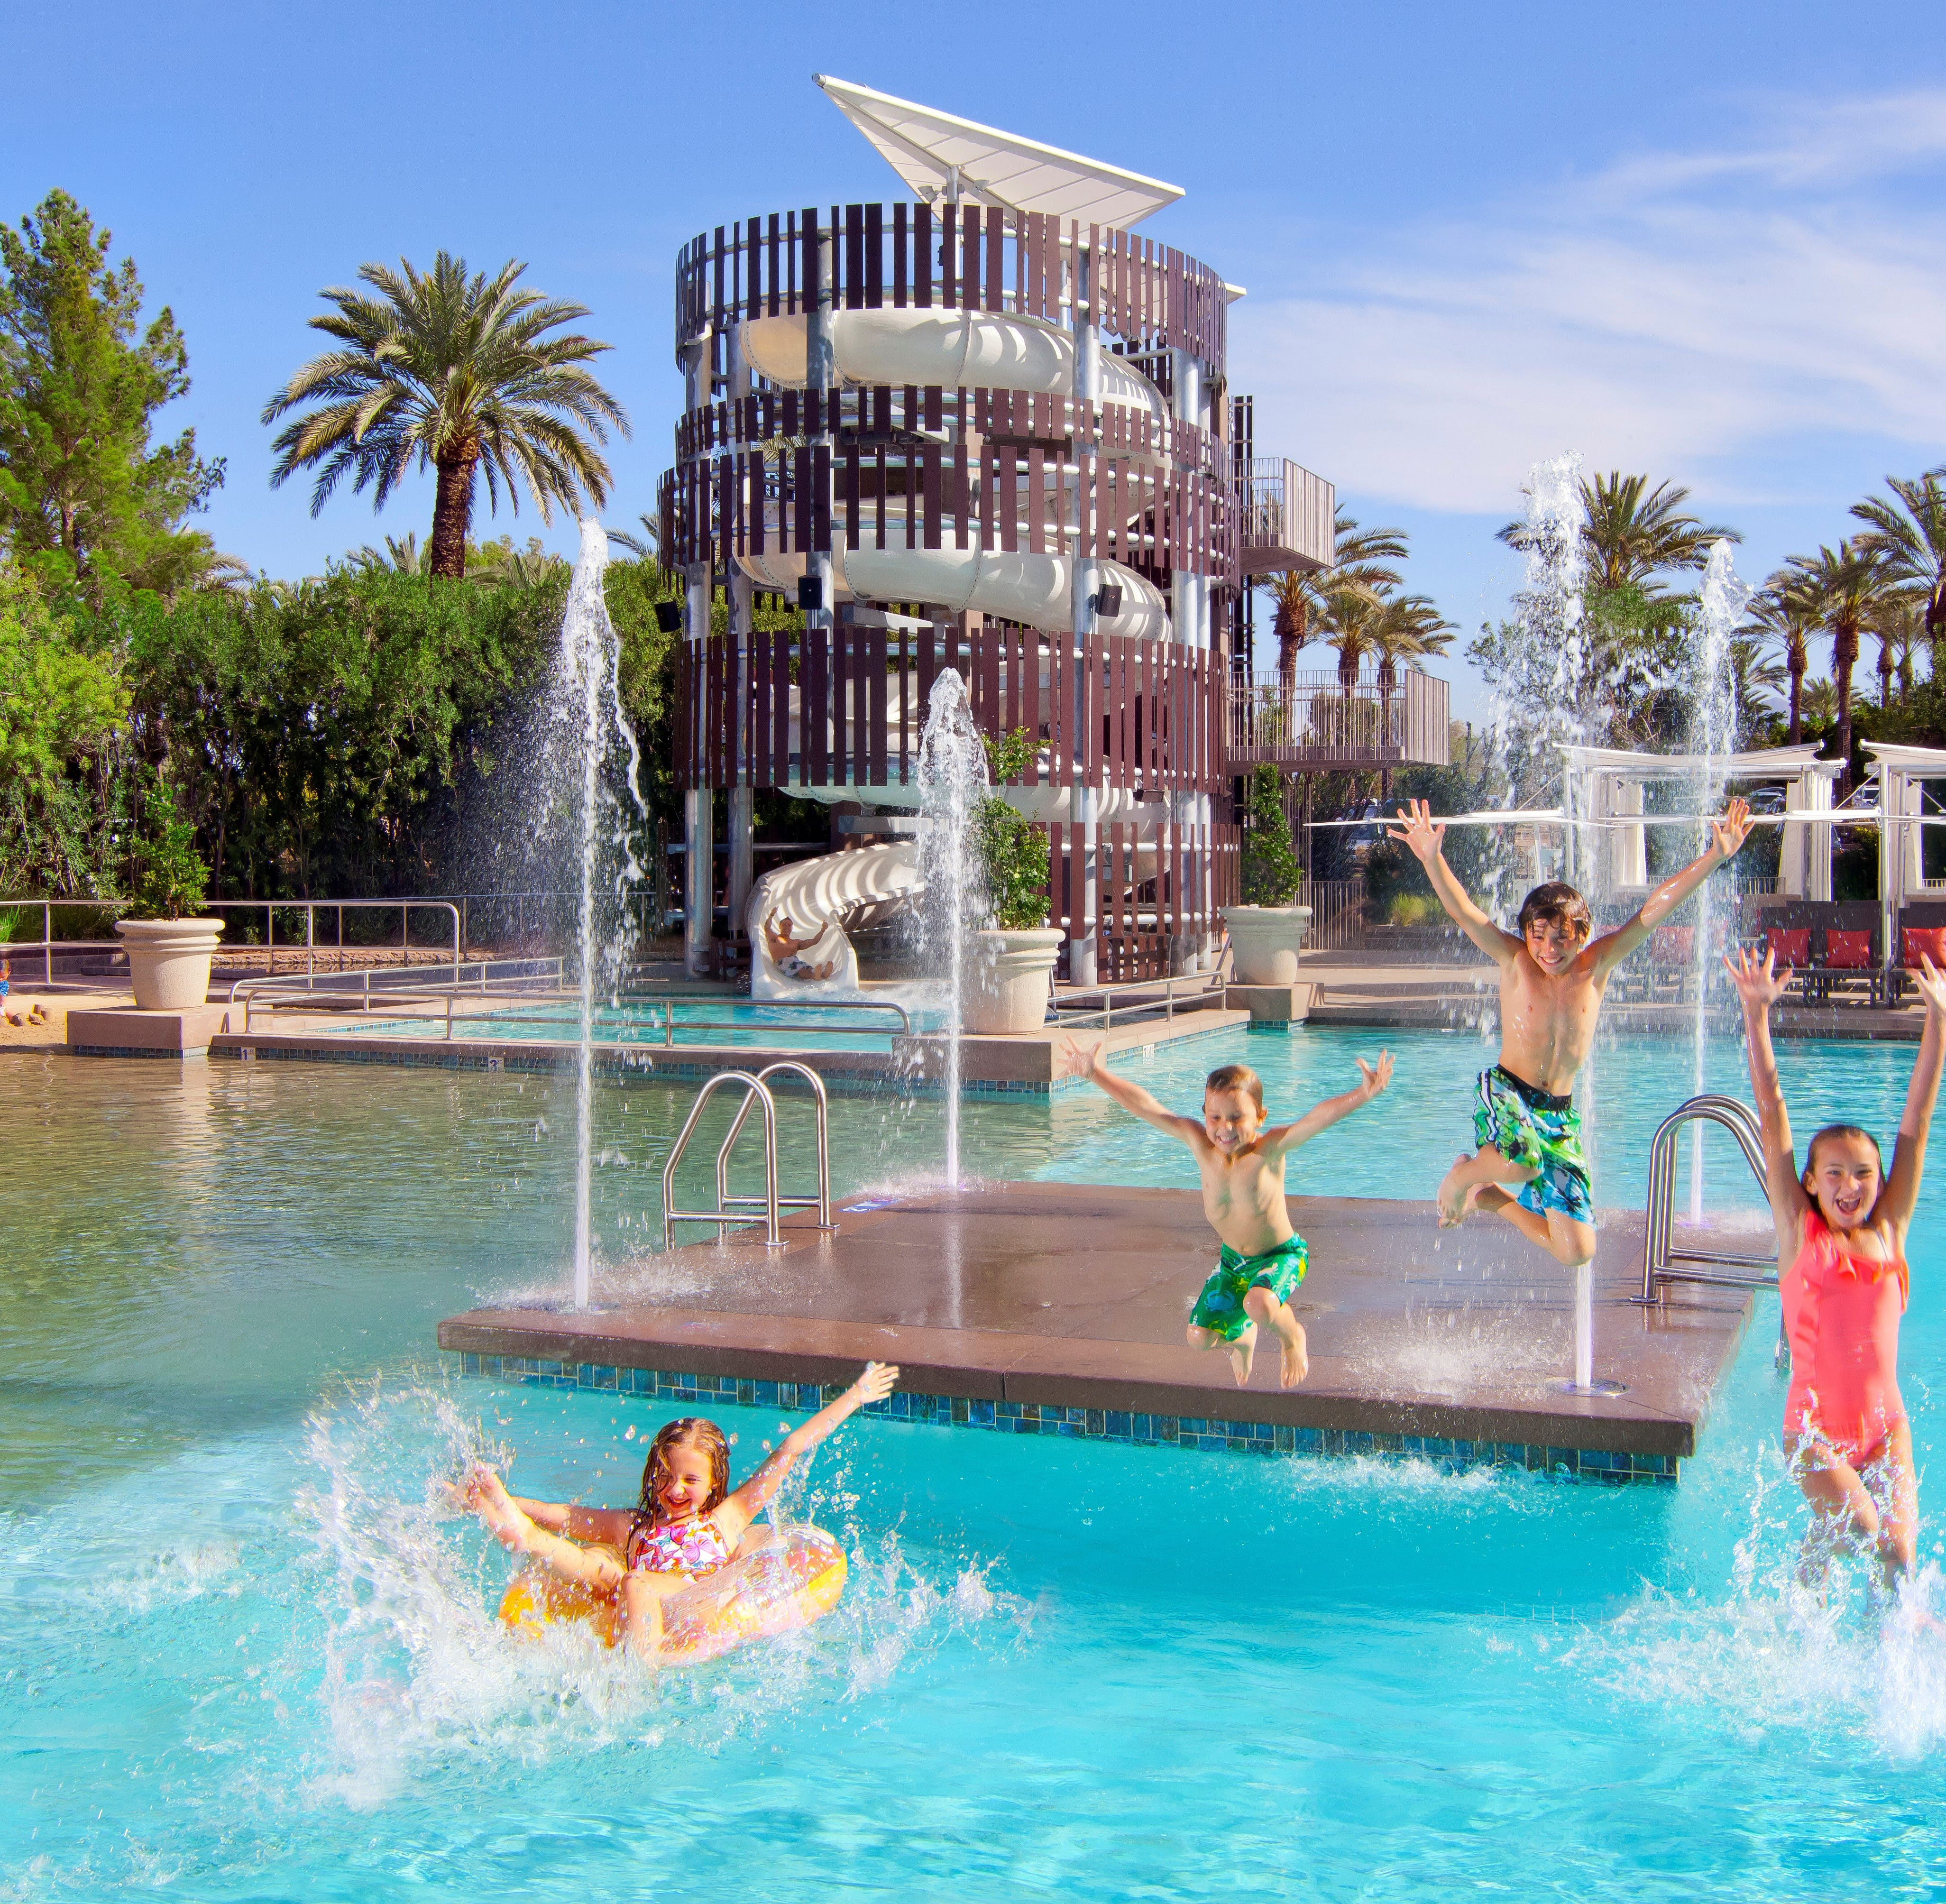 Splash around a 2.5-acre water playground with the whole family!